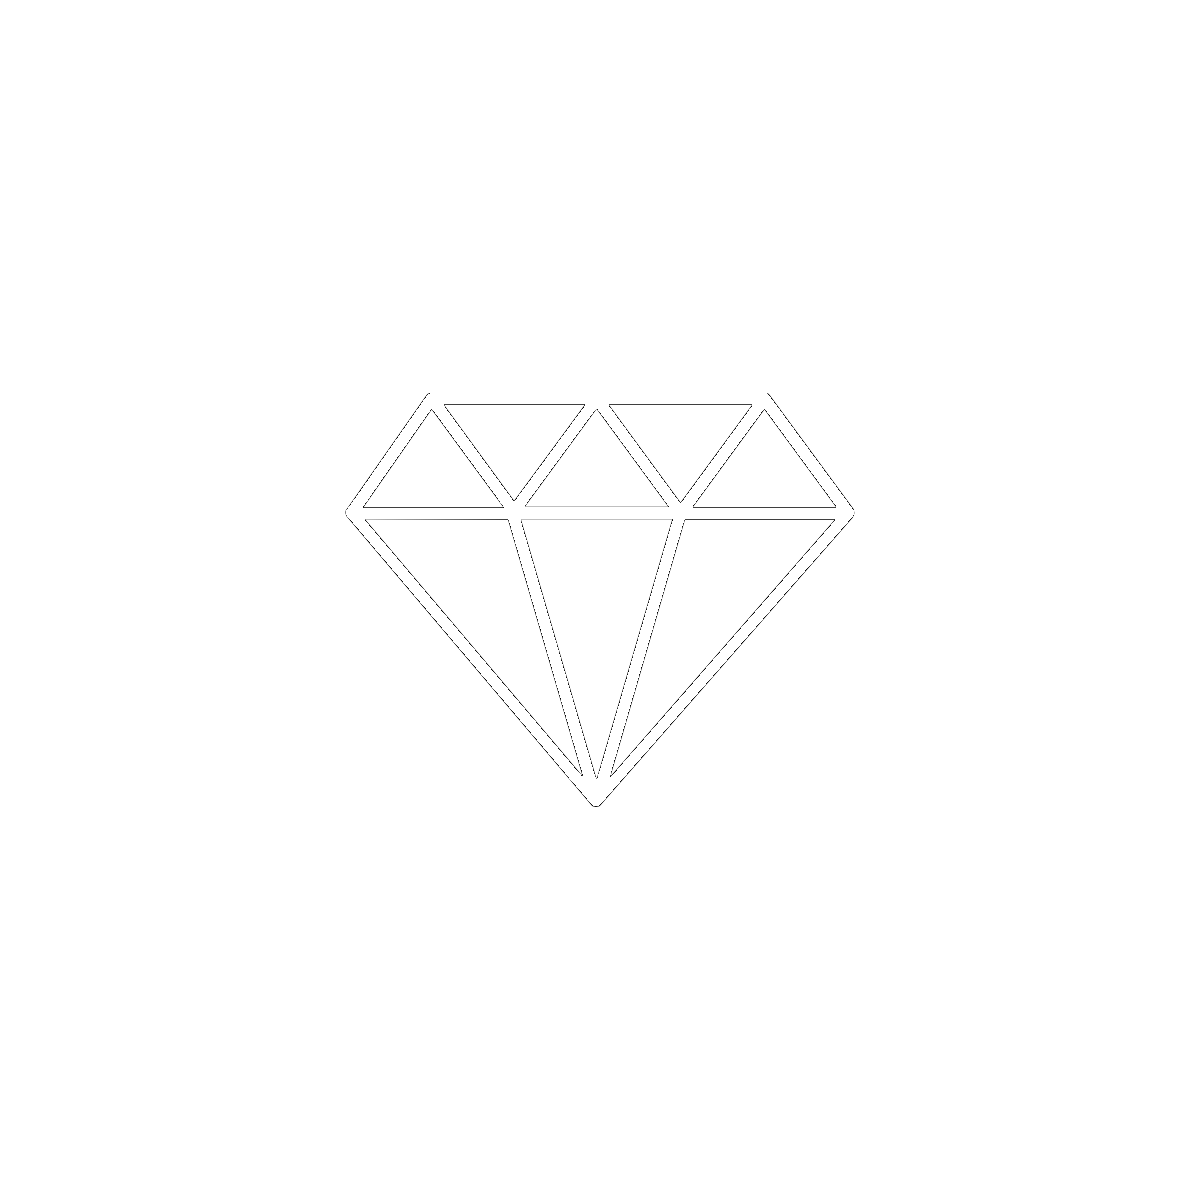 Symbol Diamonds